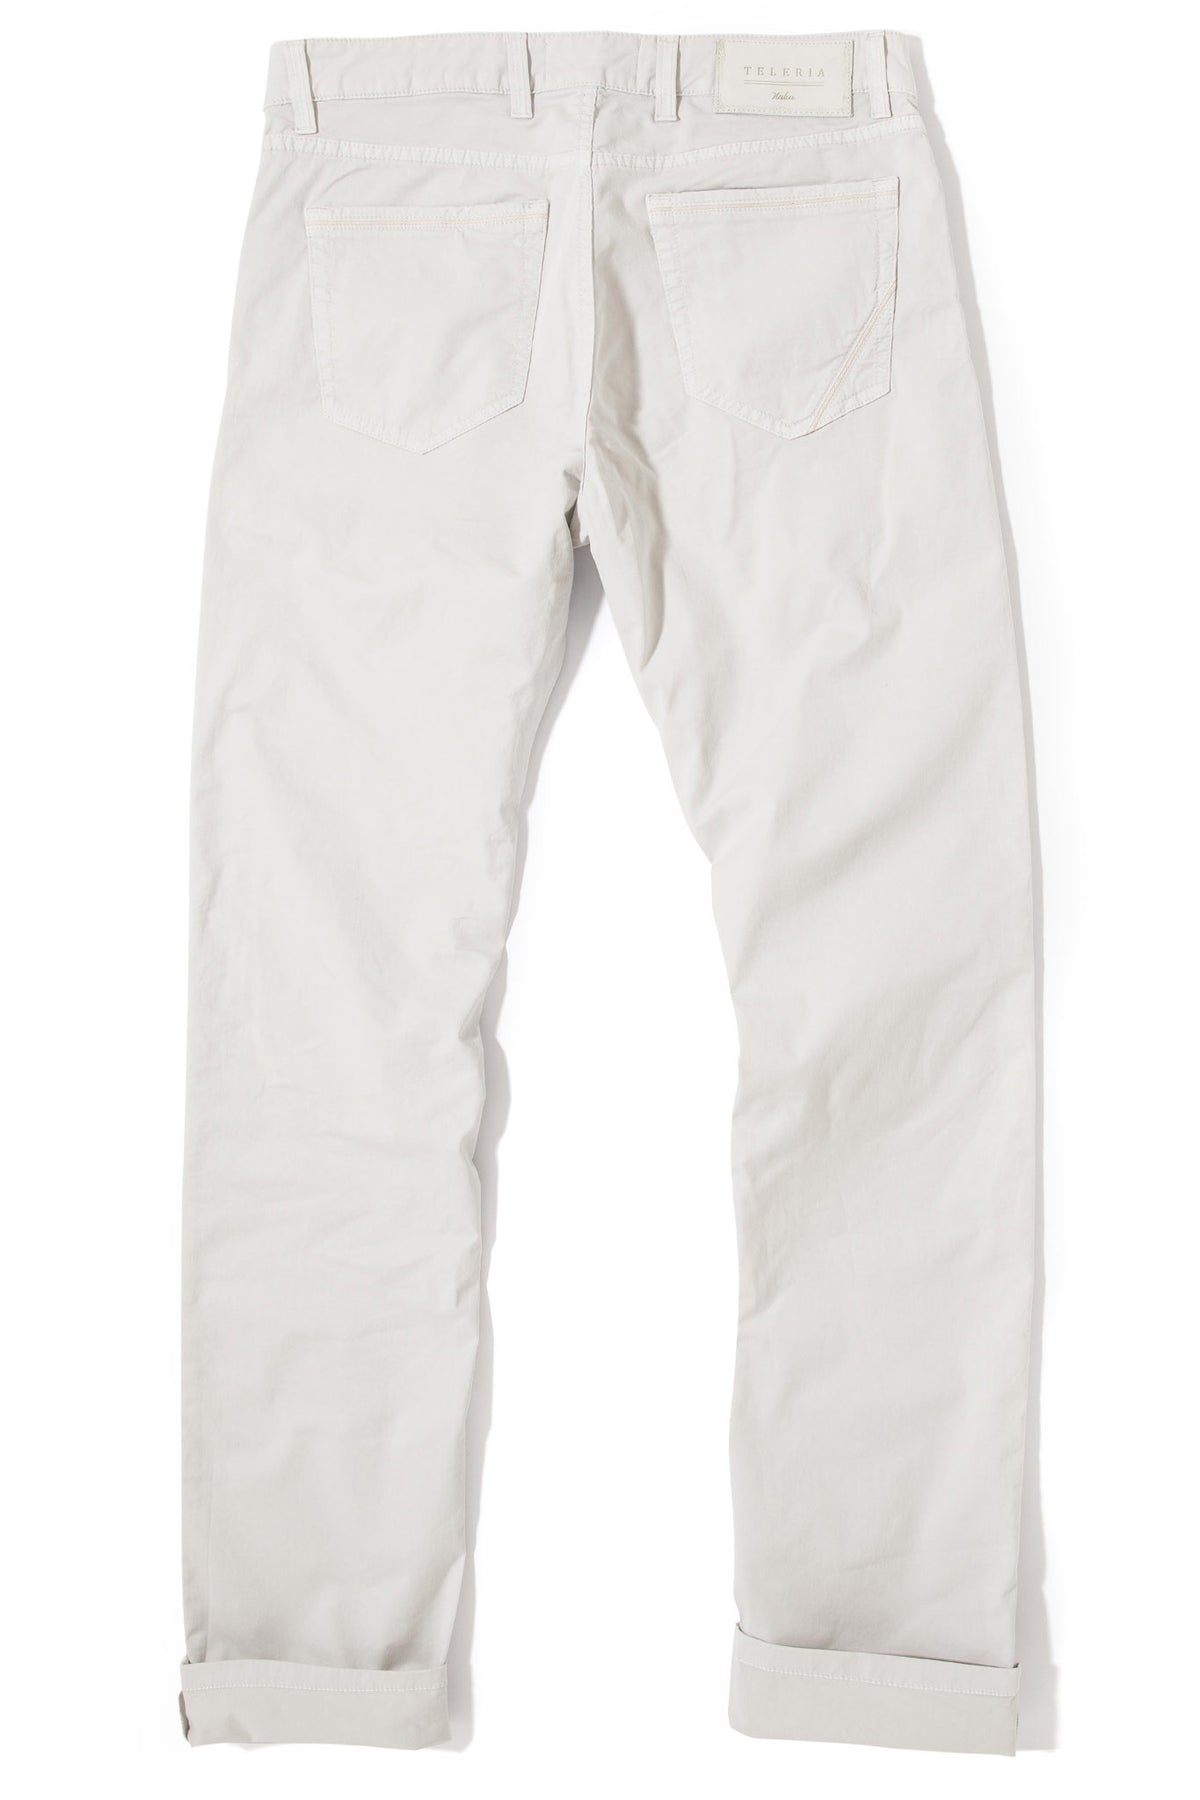 Fowler Ultralight Performance Pant In Sasso